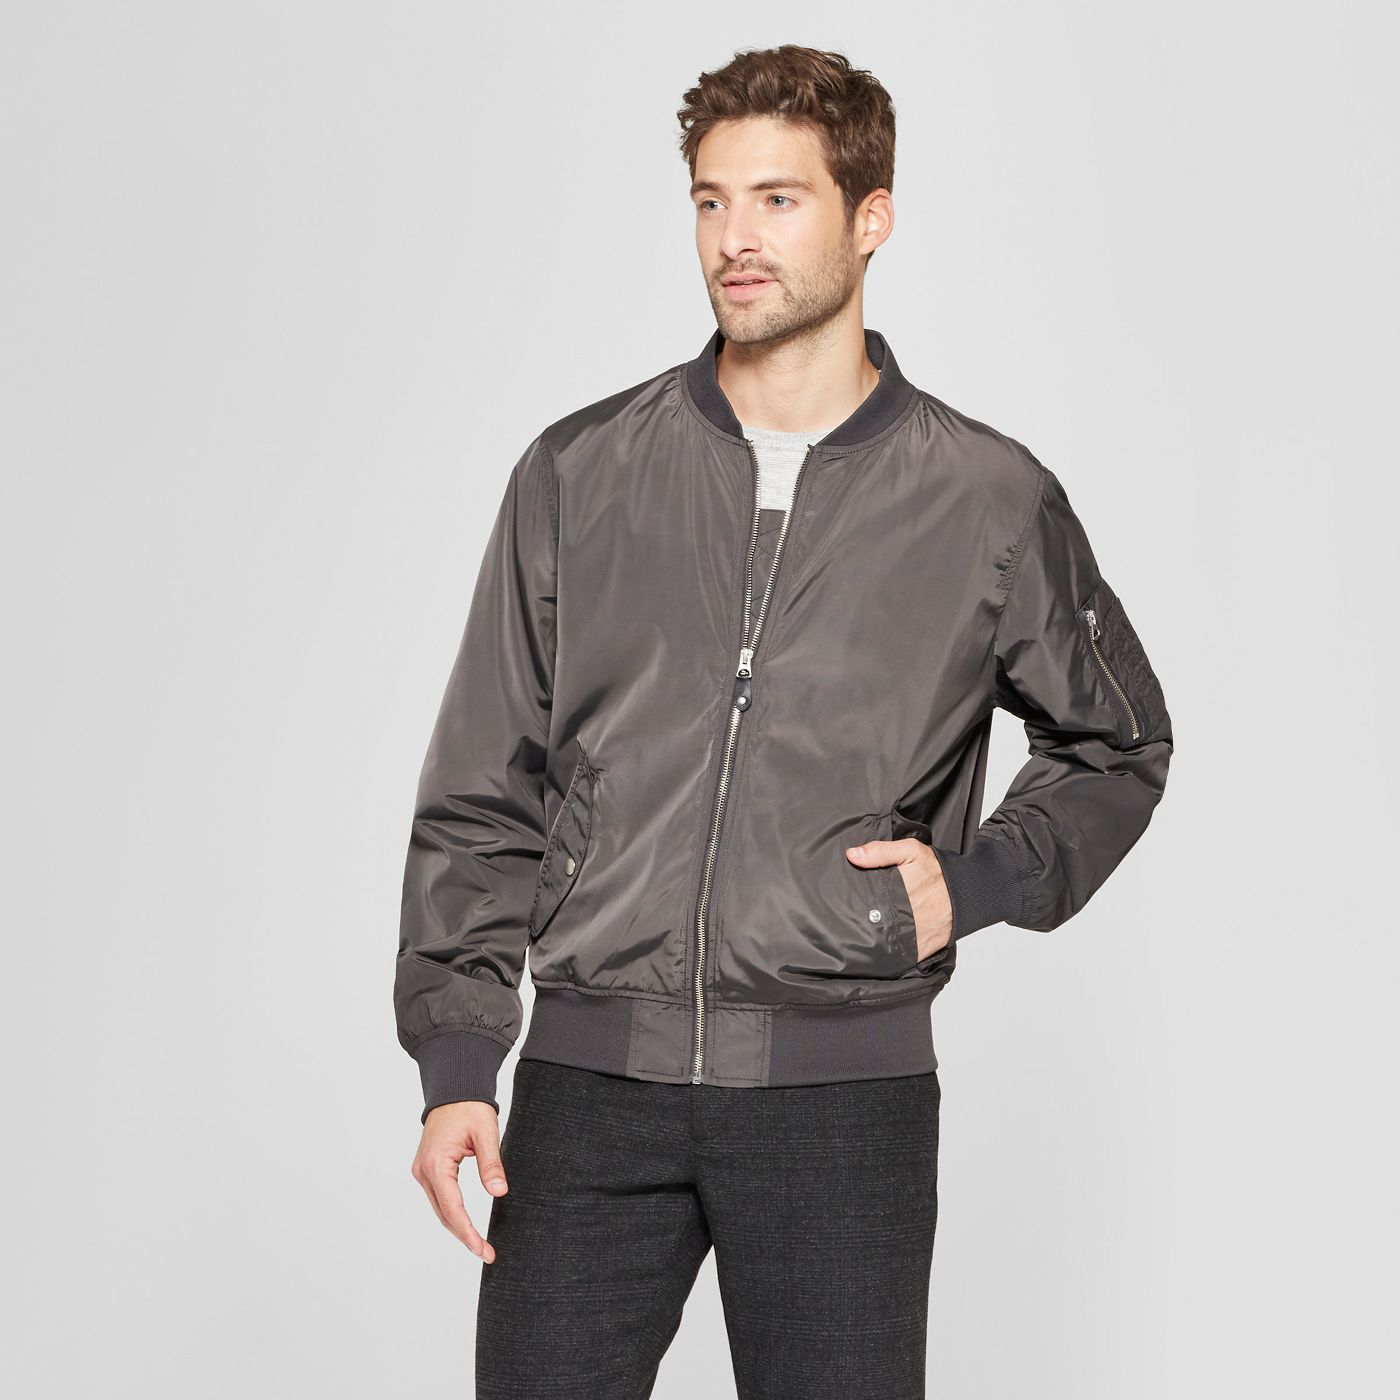 Goodfellow & Co Men's Lightweight MA-1 Bomber Jacket